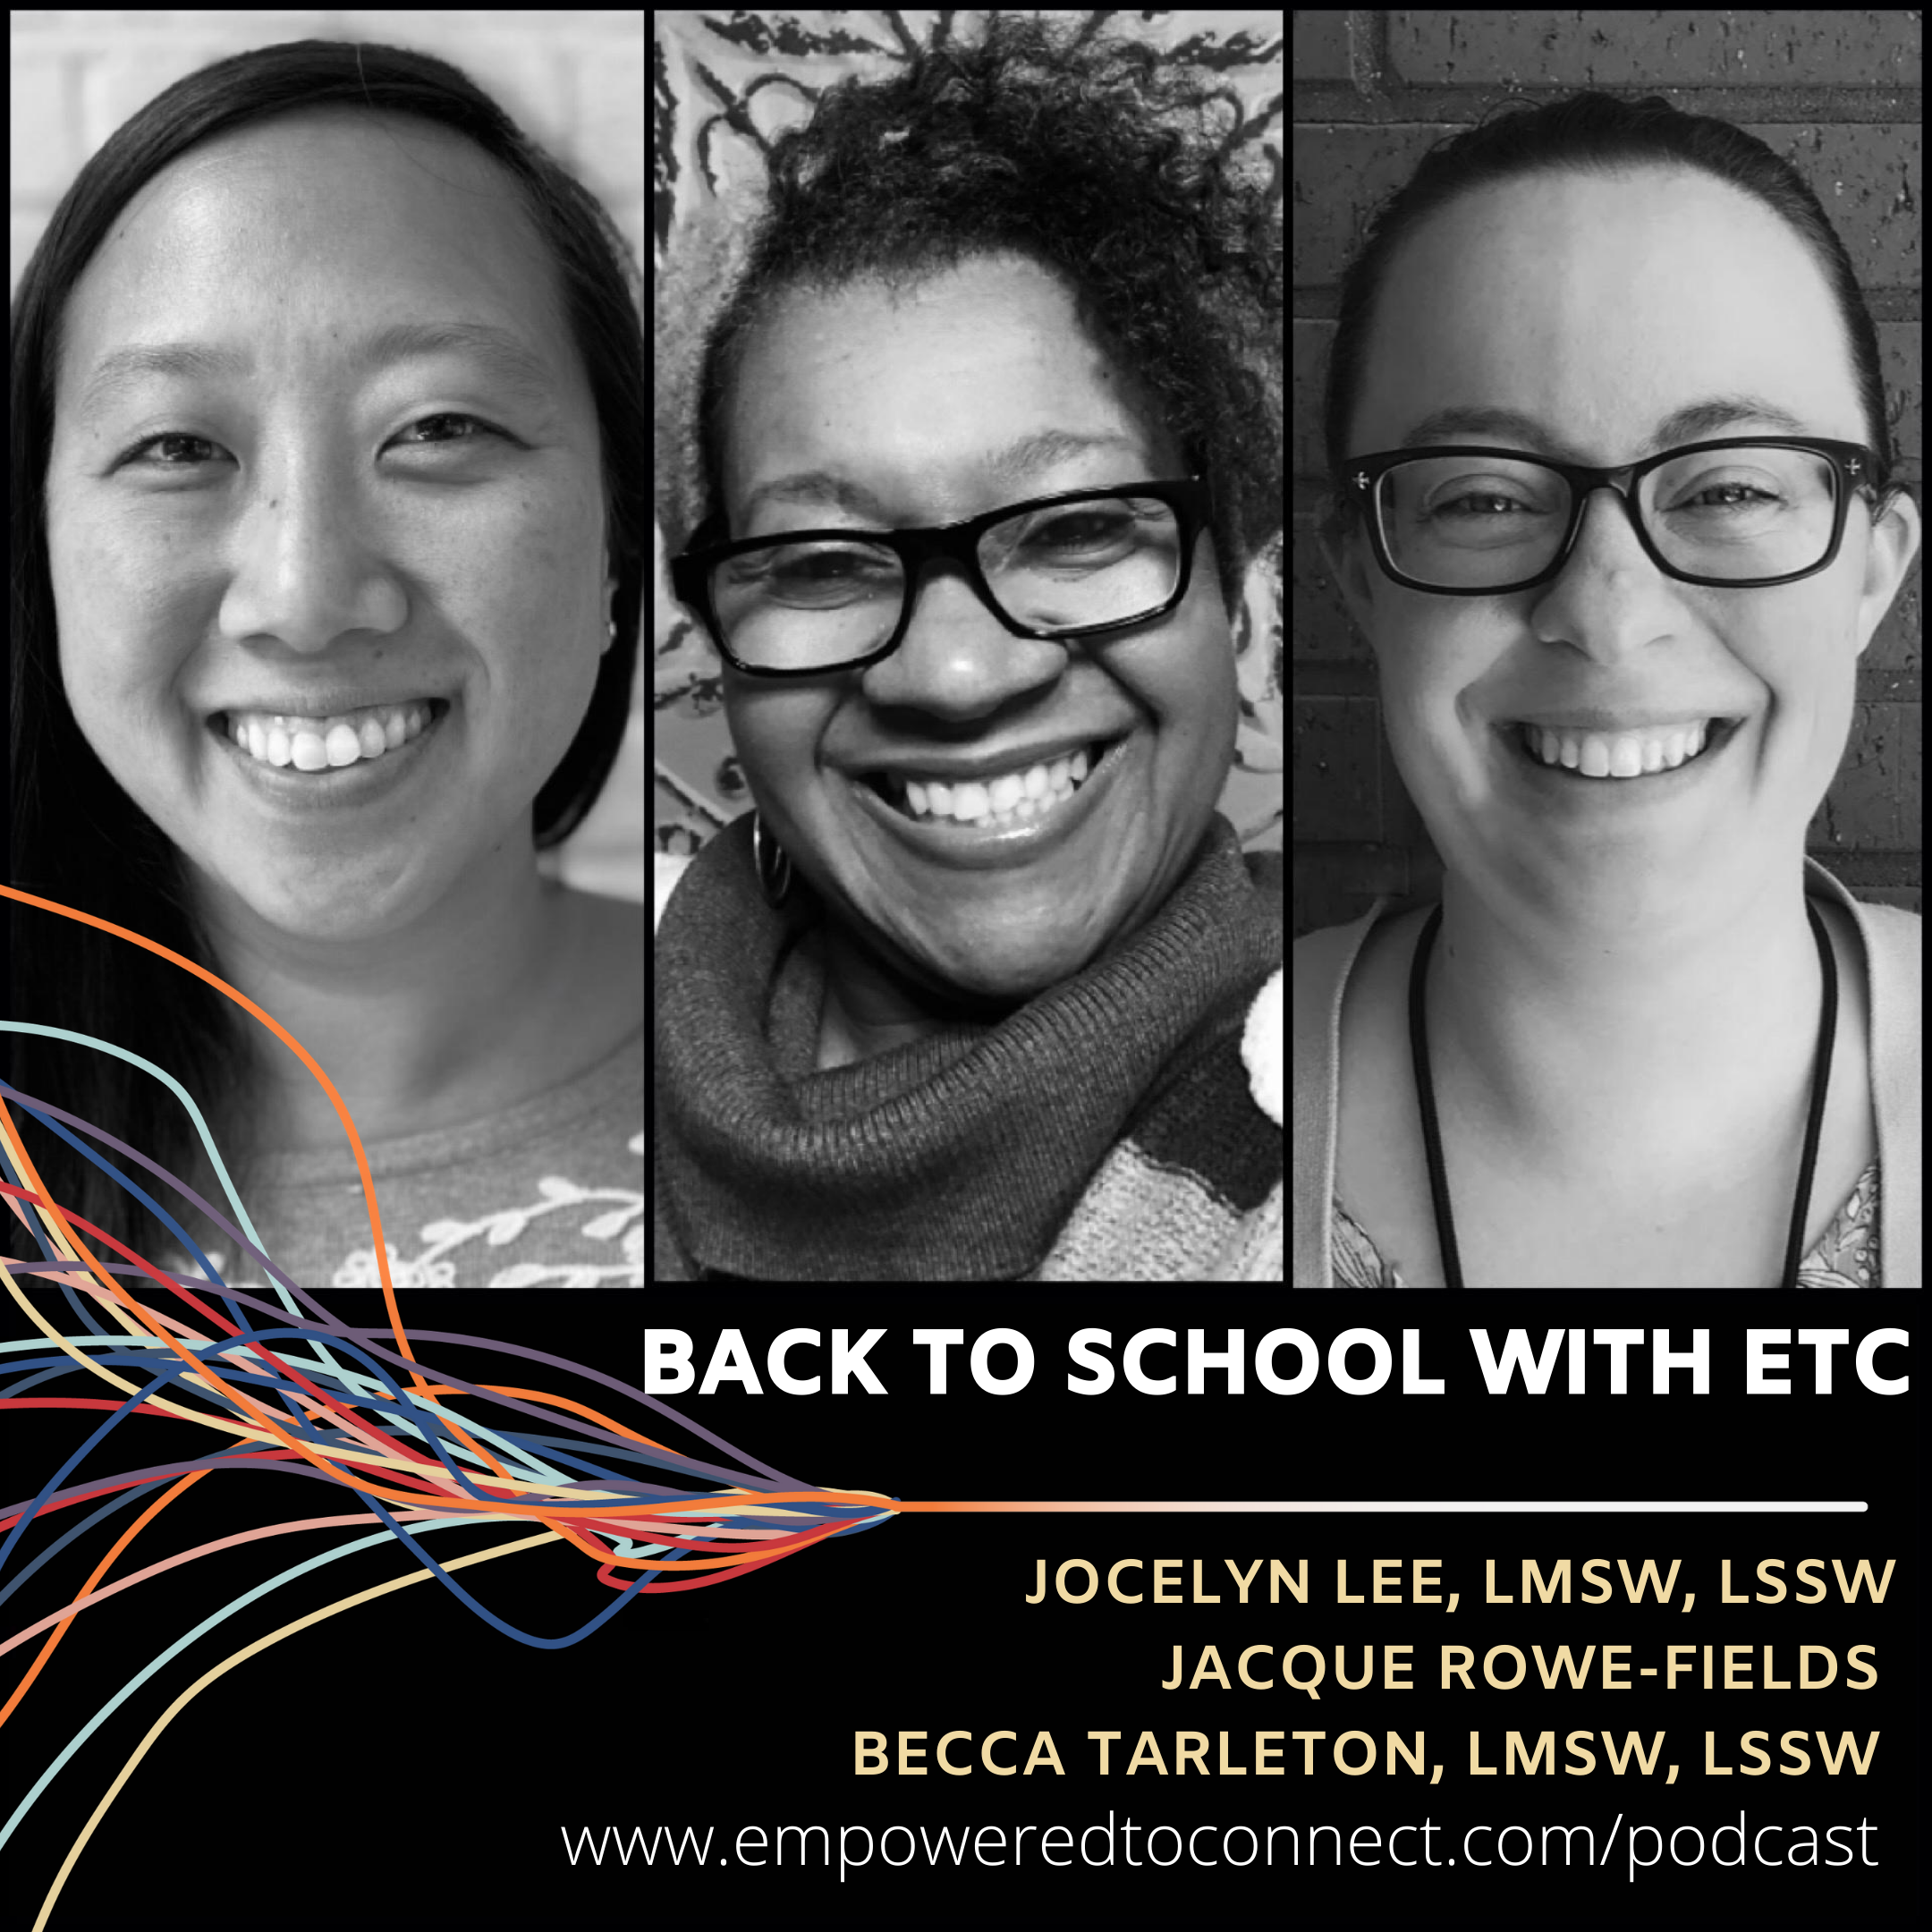 Empowered to Connect Podcast